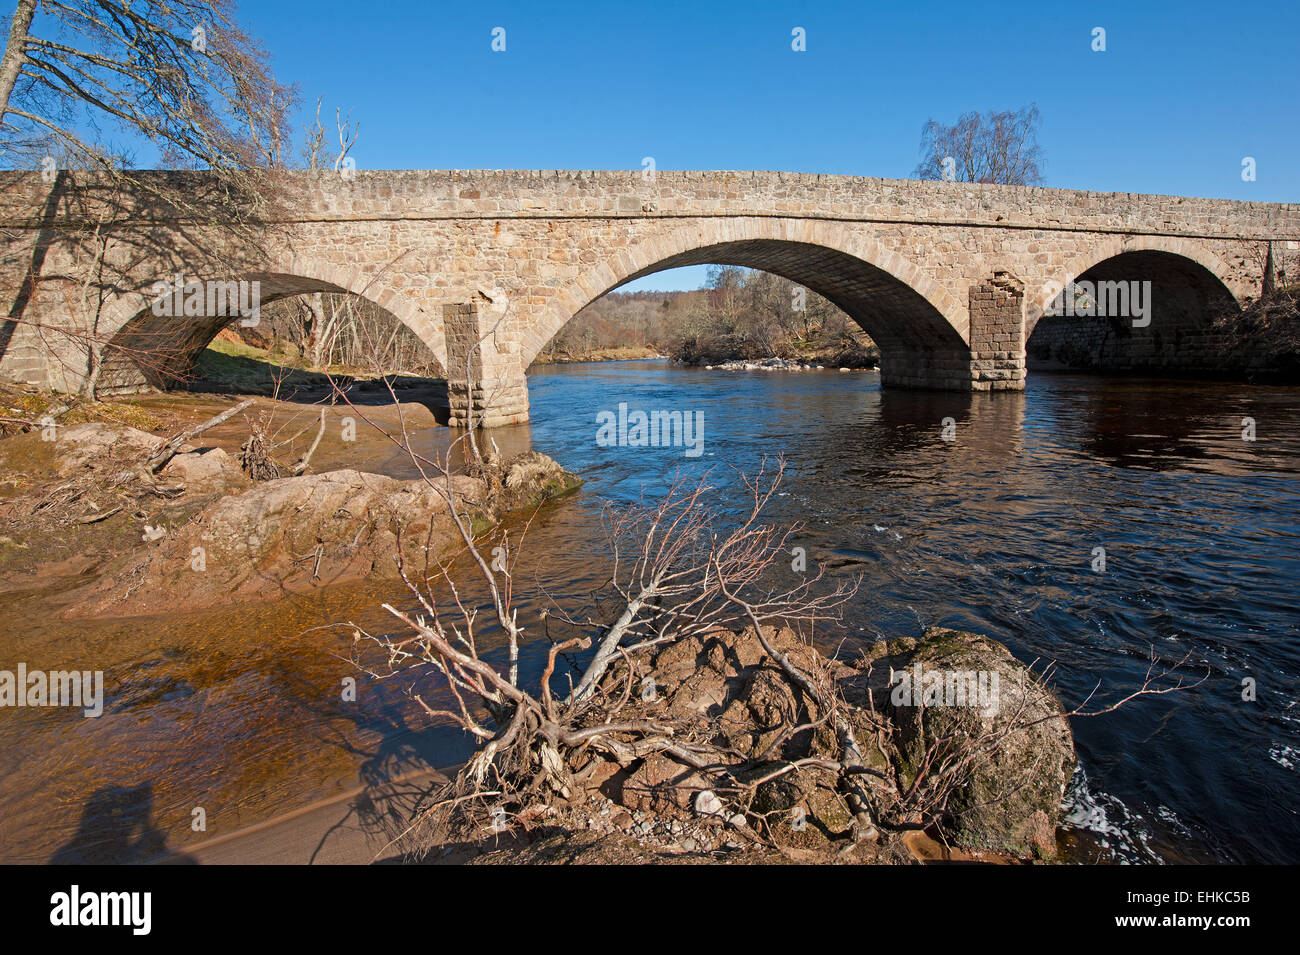 Der Magische Findhorn Garten 3 Arch Stone Bridge Stockfotos And 3 Arch Stone Bridge